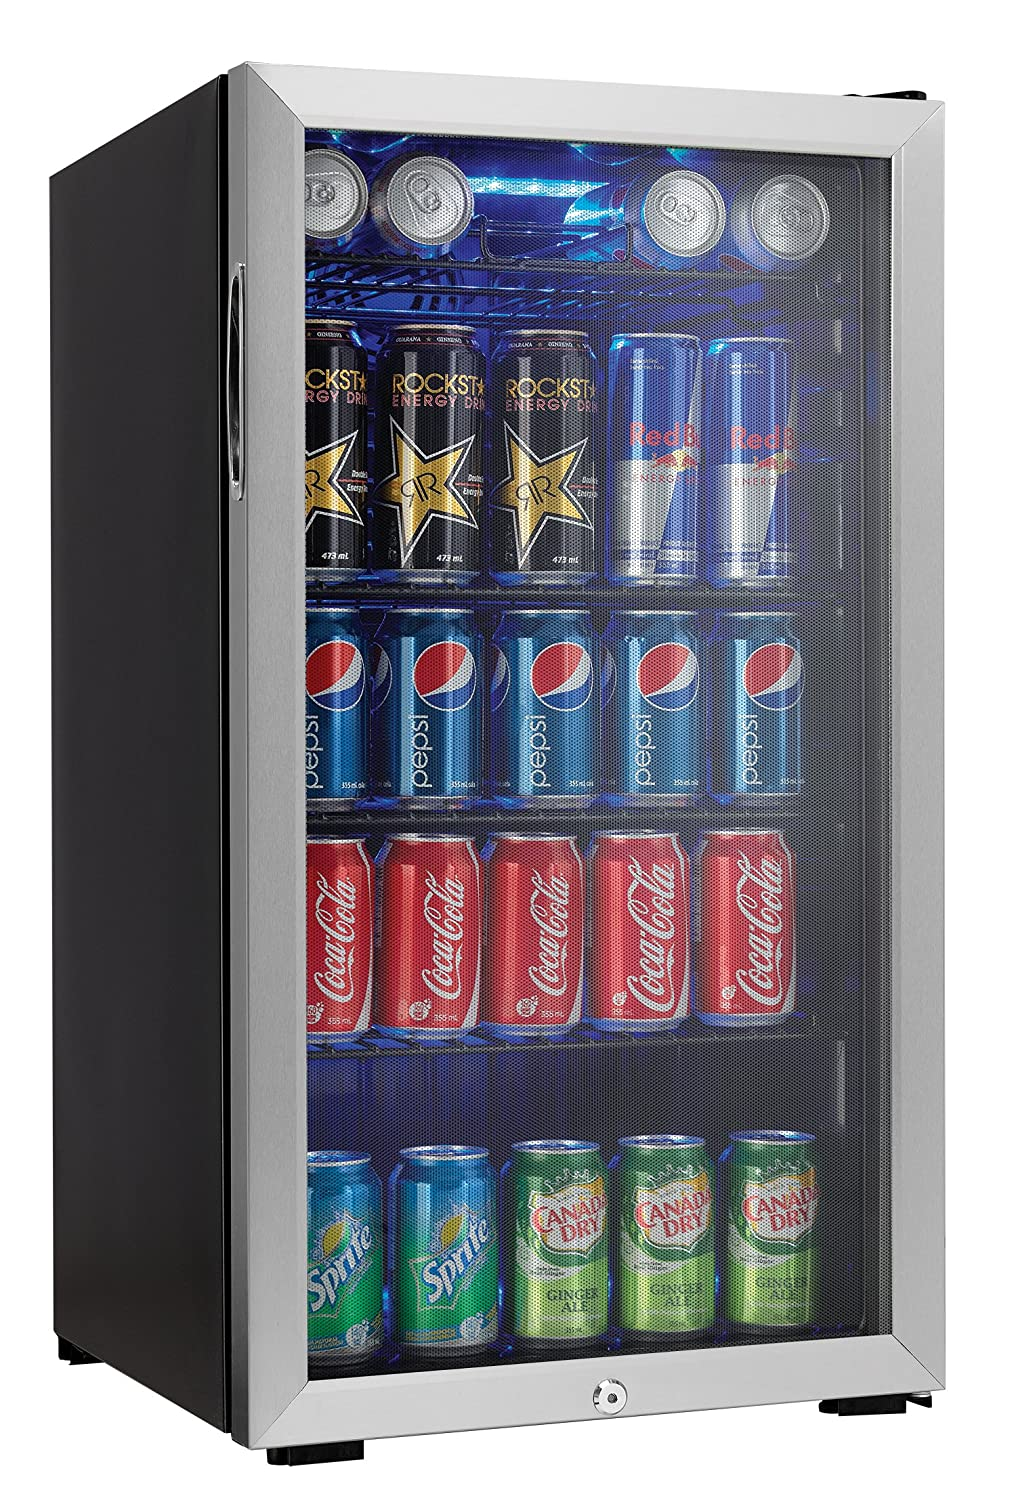 Danby 120 Can Beverage Center, Stainless Steel DBC120BLS DBC120BLS-3